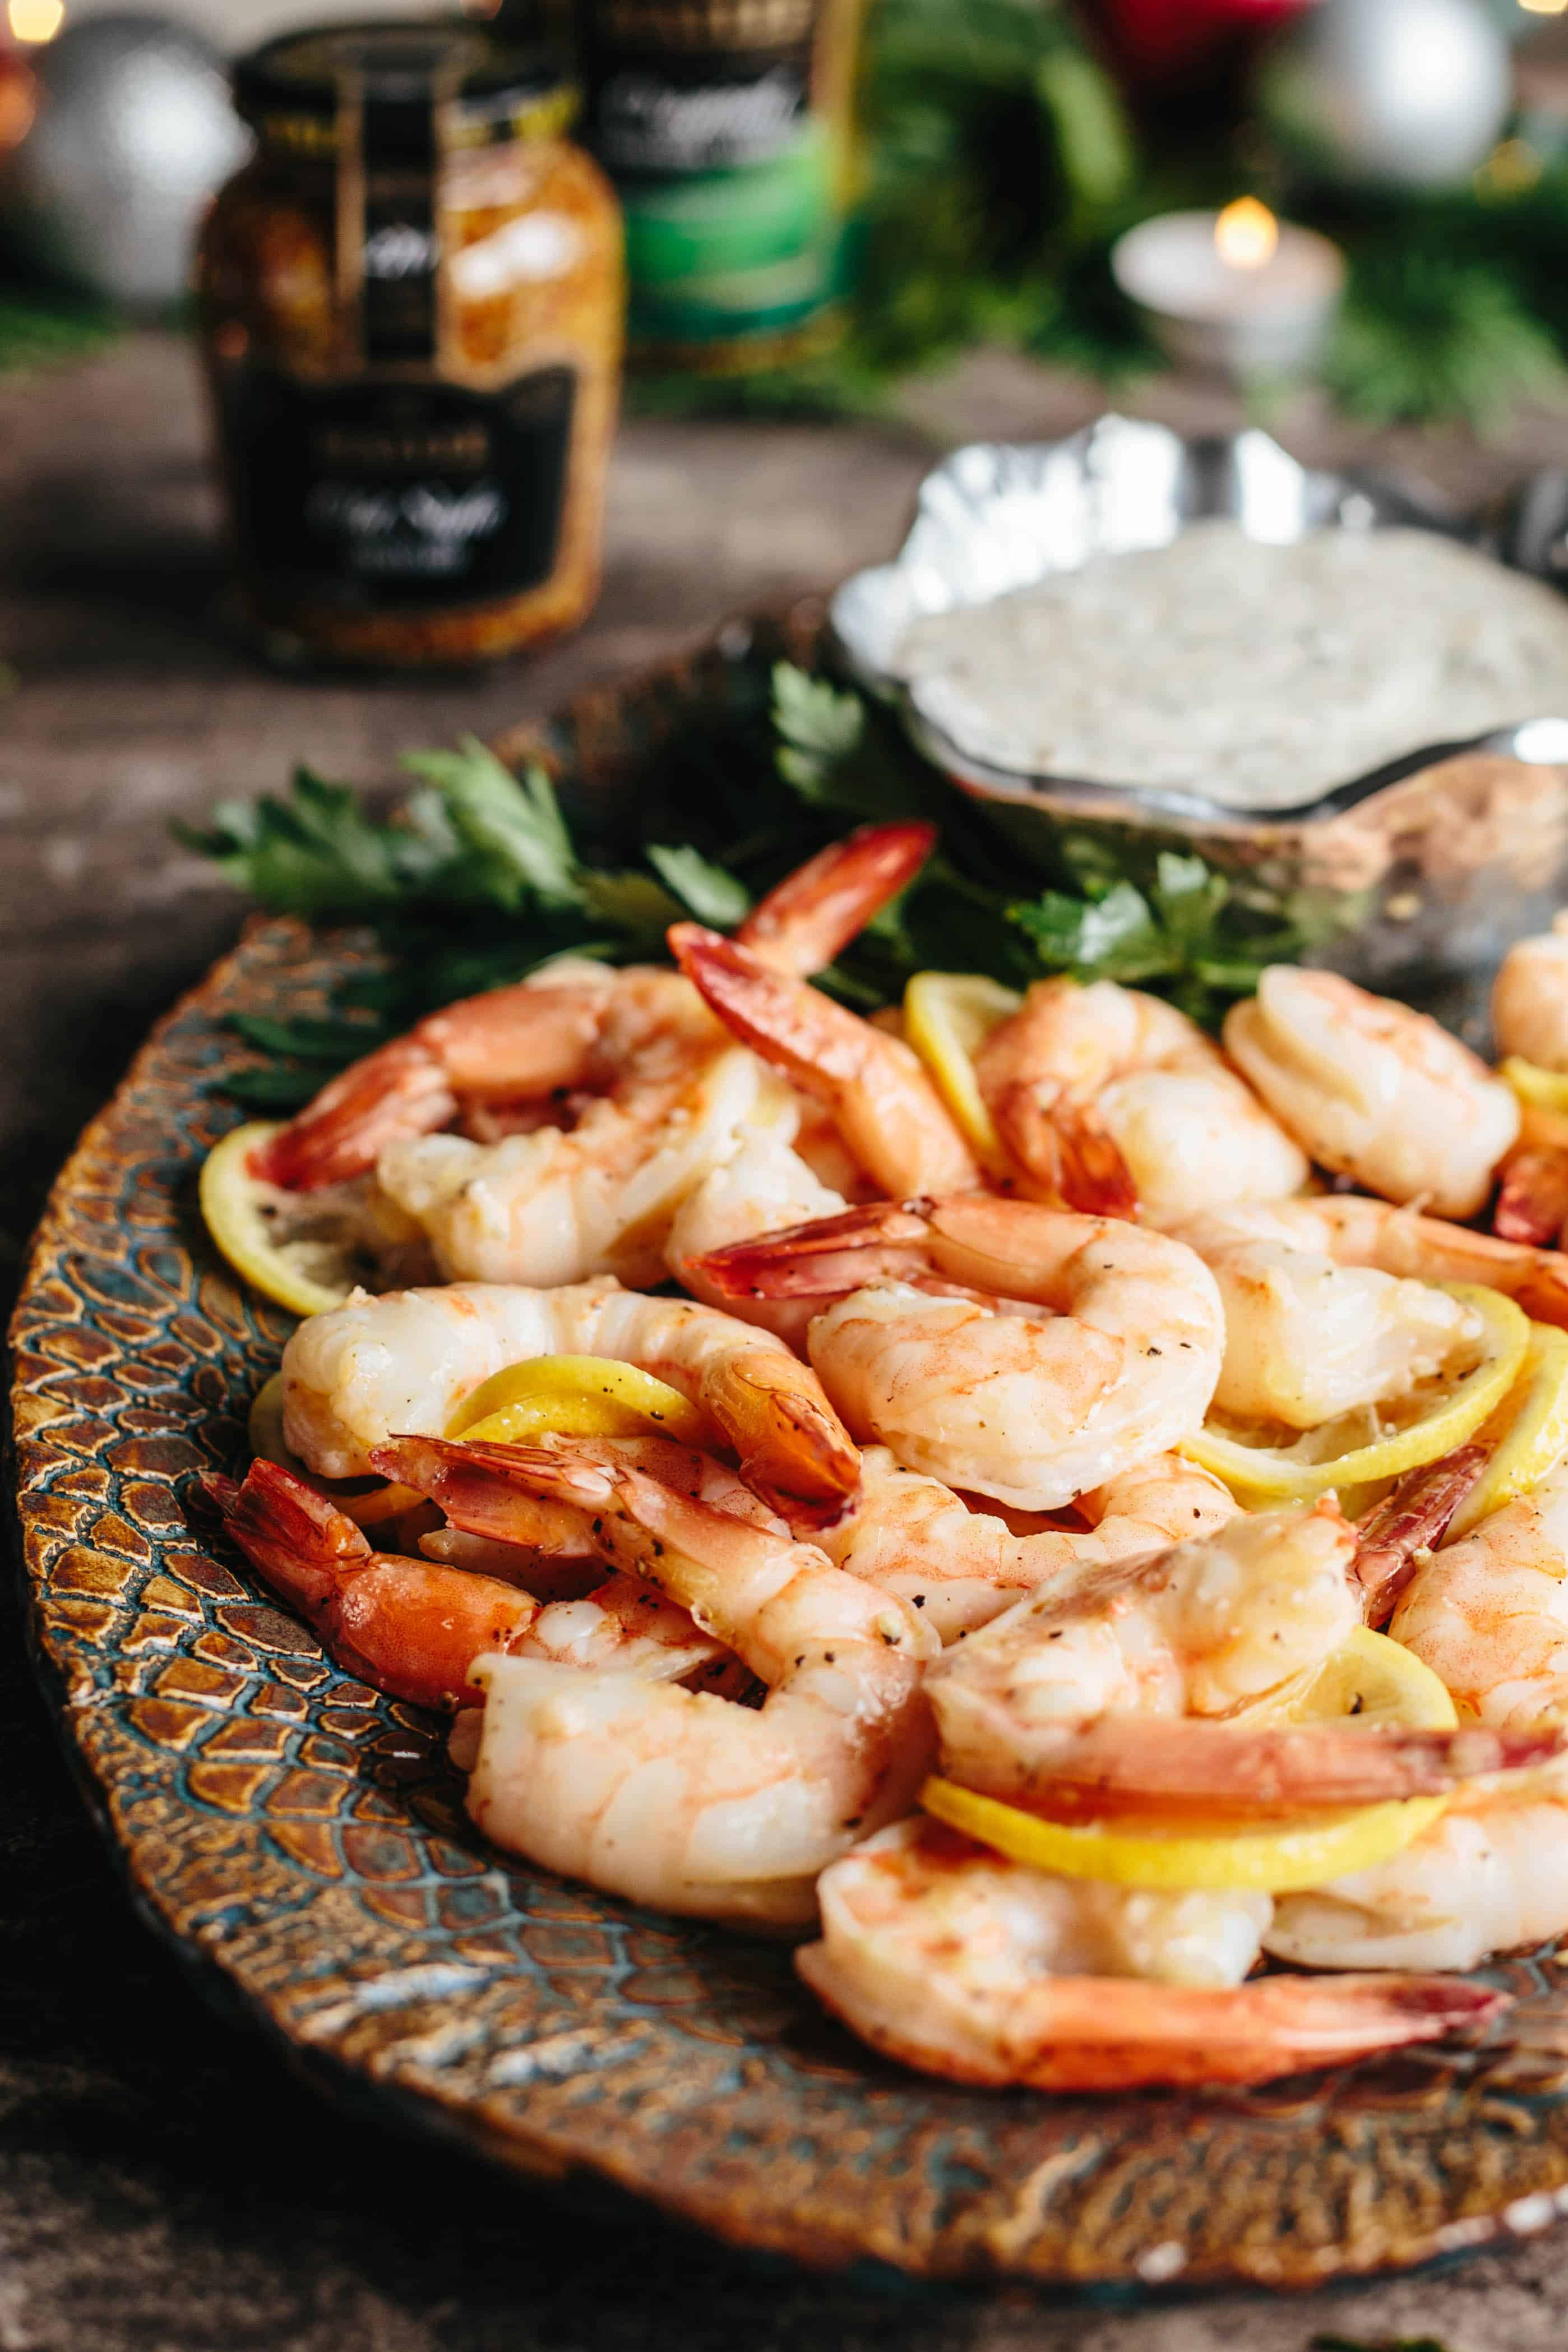 Close up of roasted shrimp mixed with thin slices of lemon on a platter.